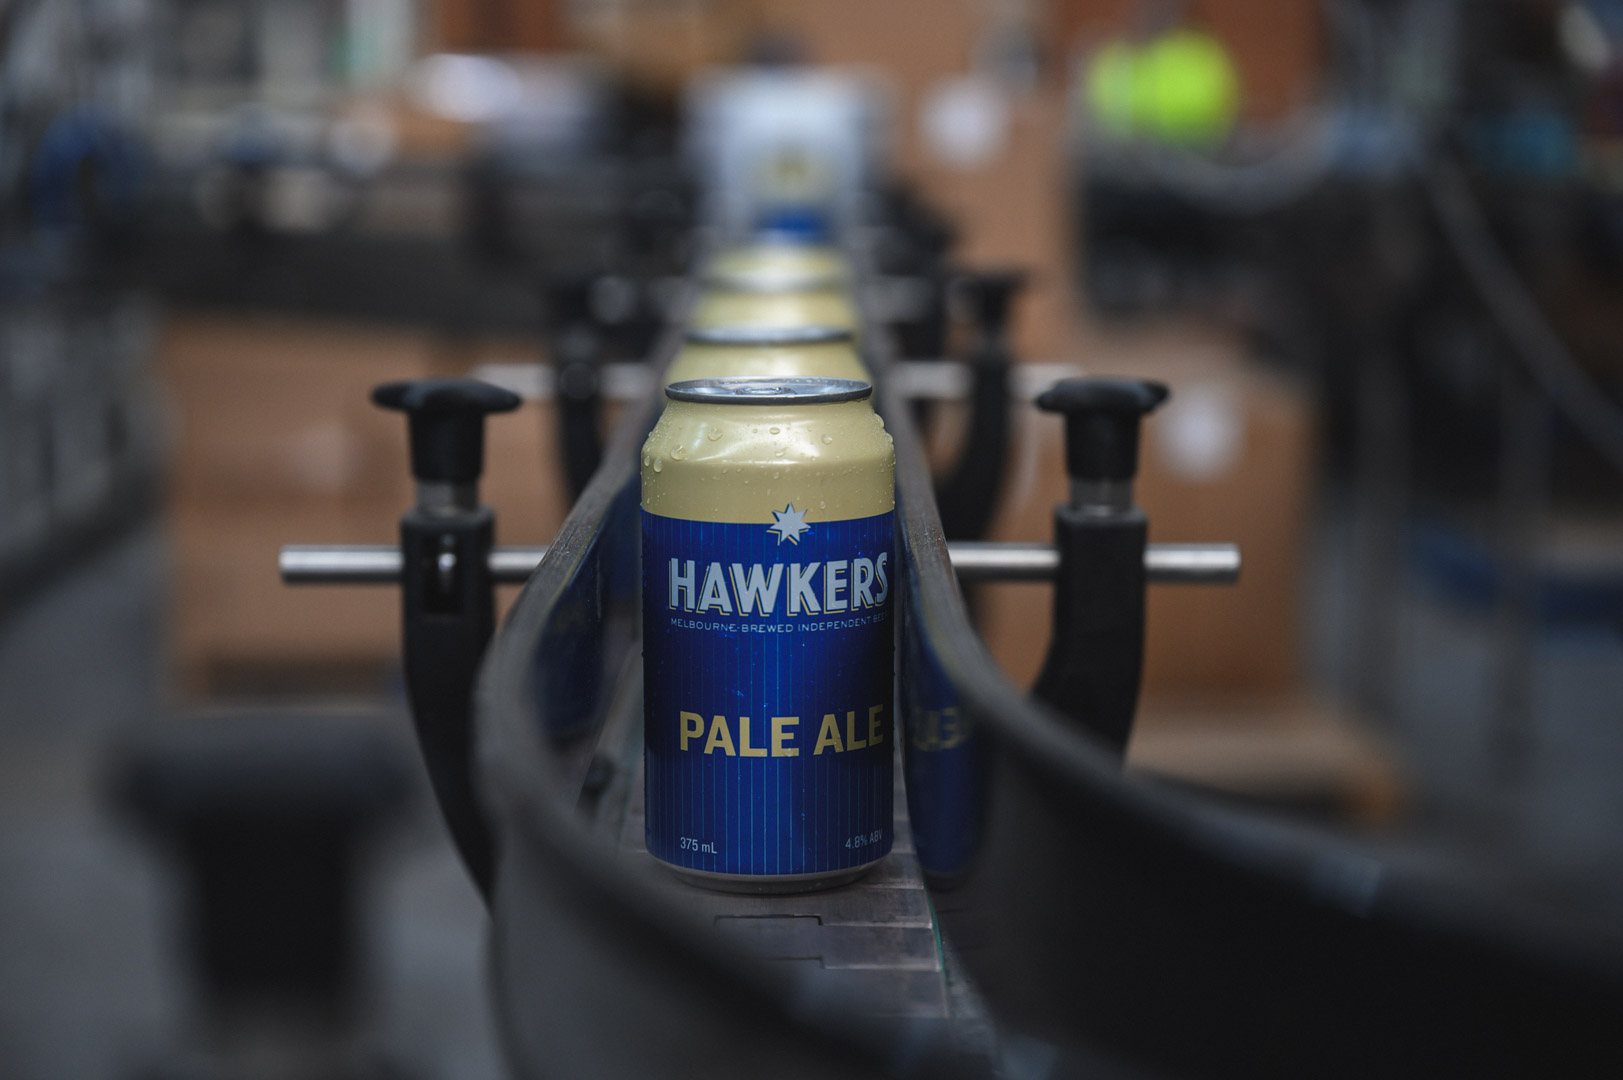 Hawkers-PaleAle-Canning.jpg